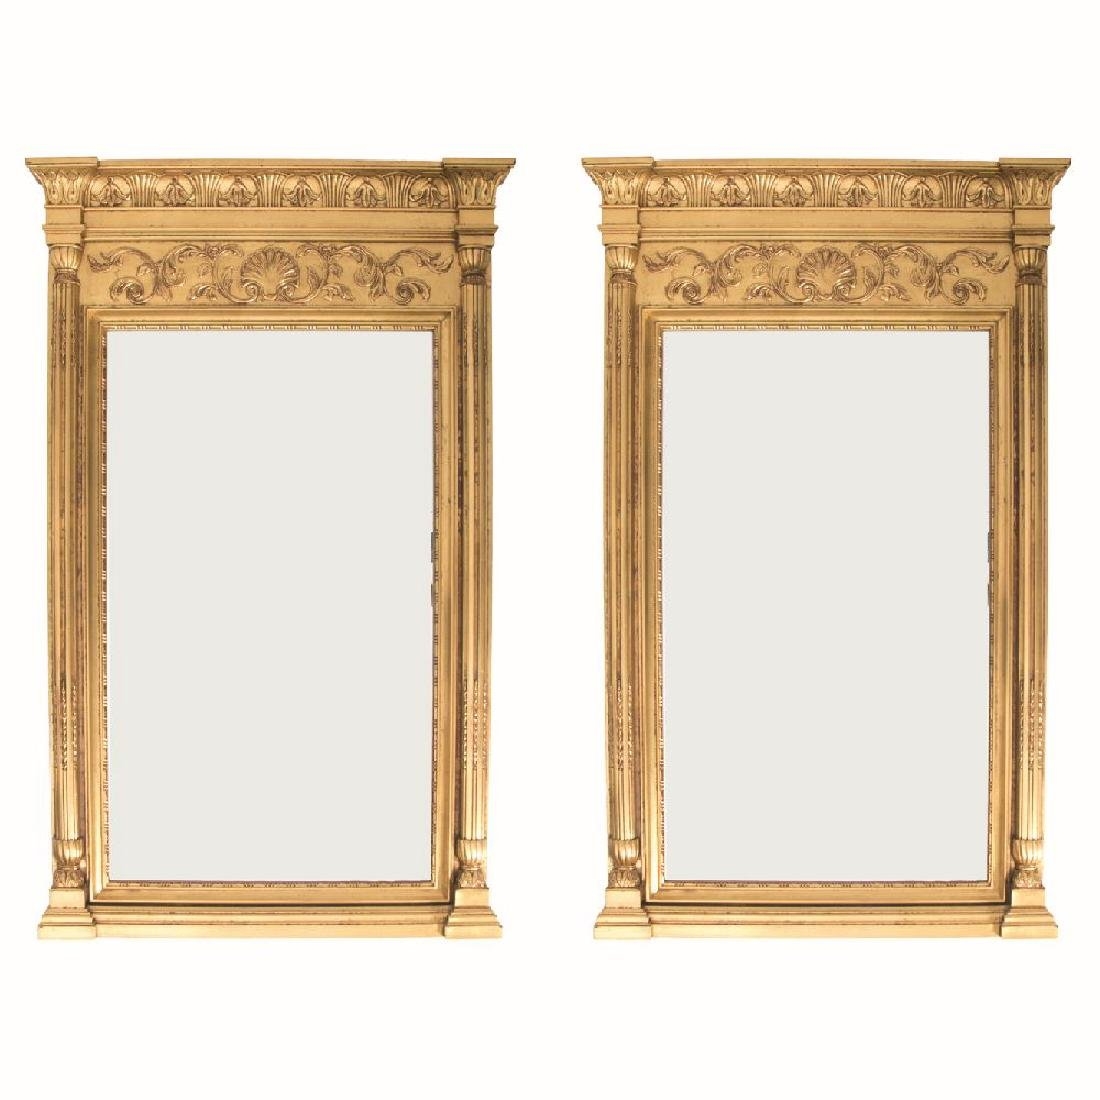 A Pair of Neoclassical Style Gilt Framed Beveled